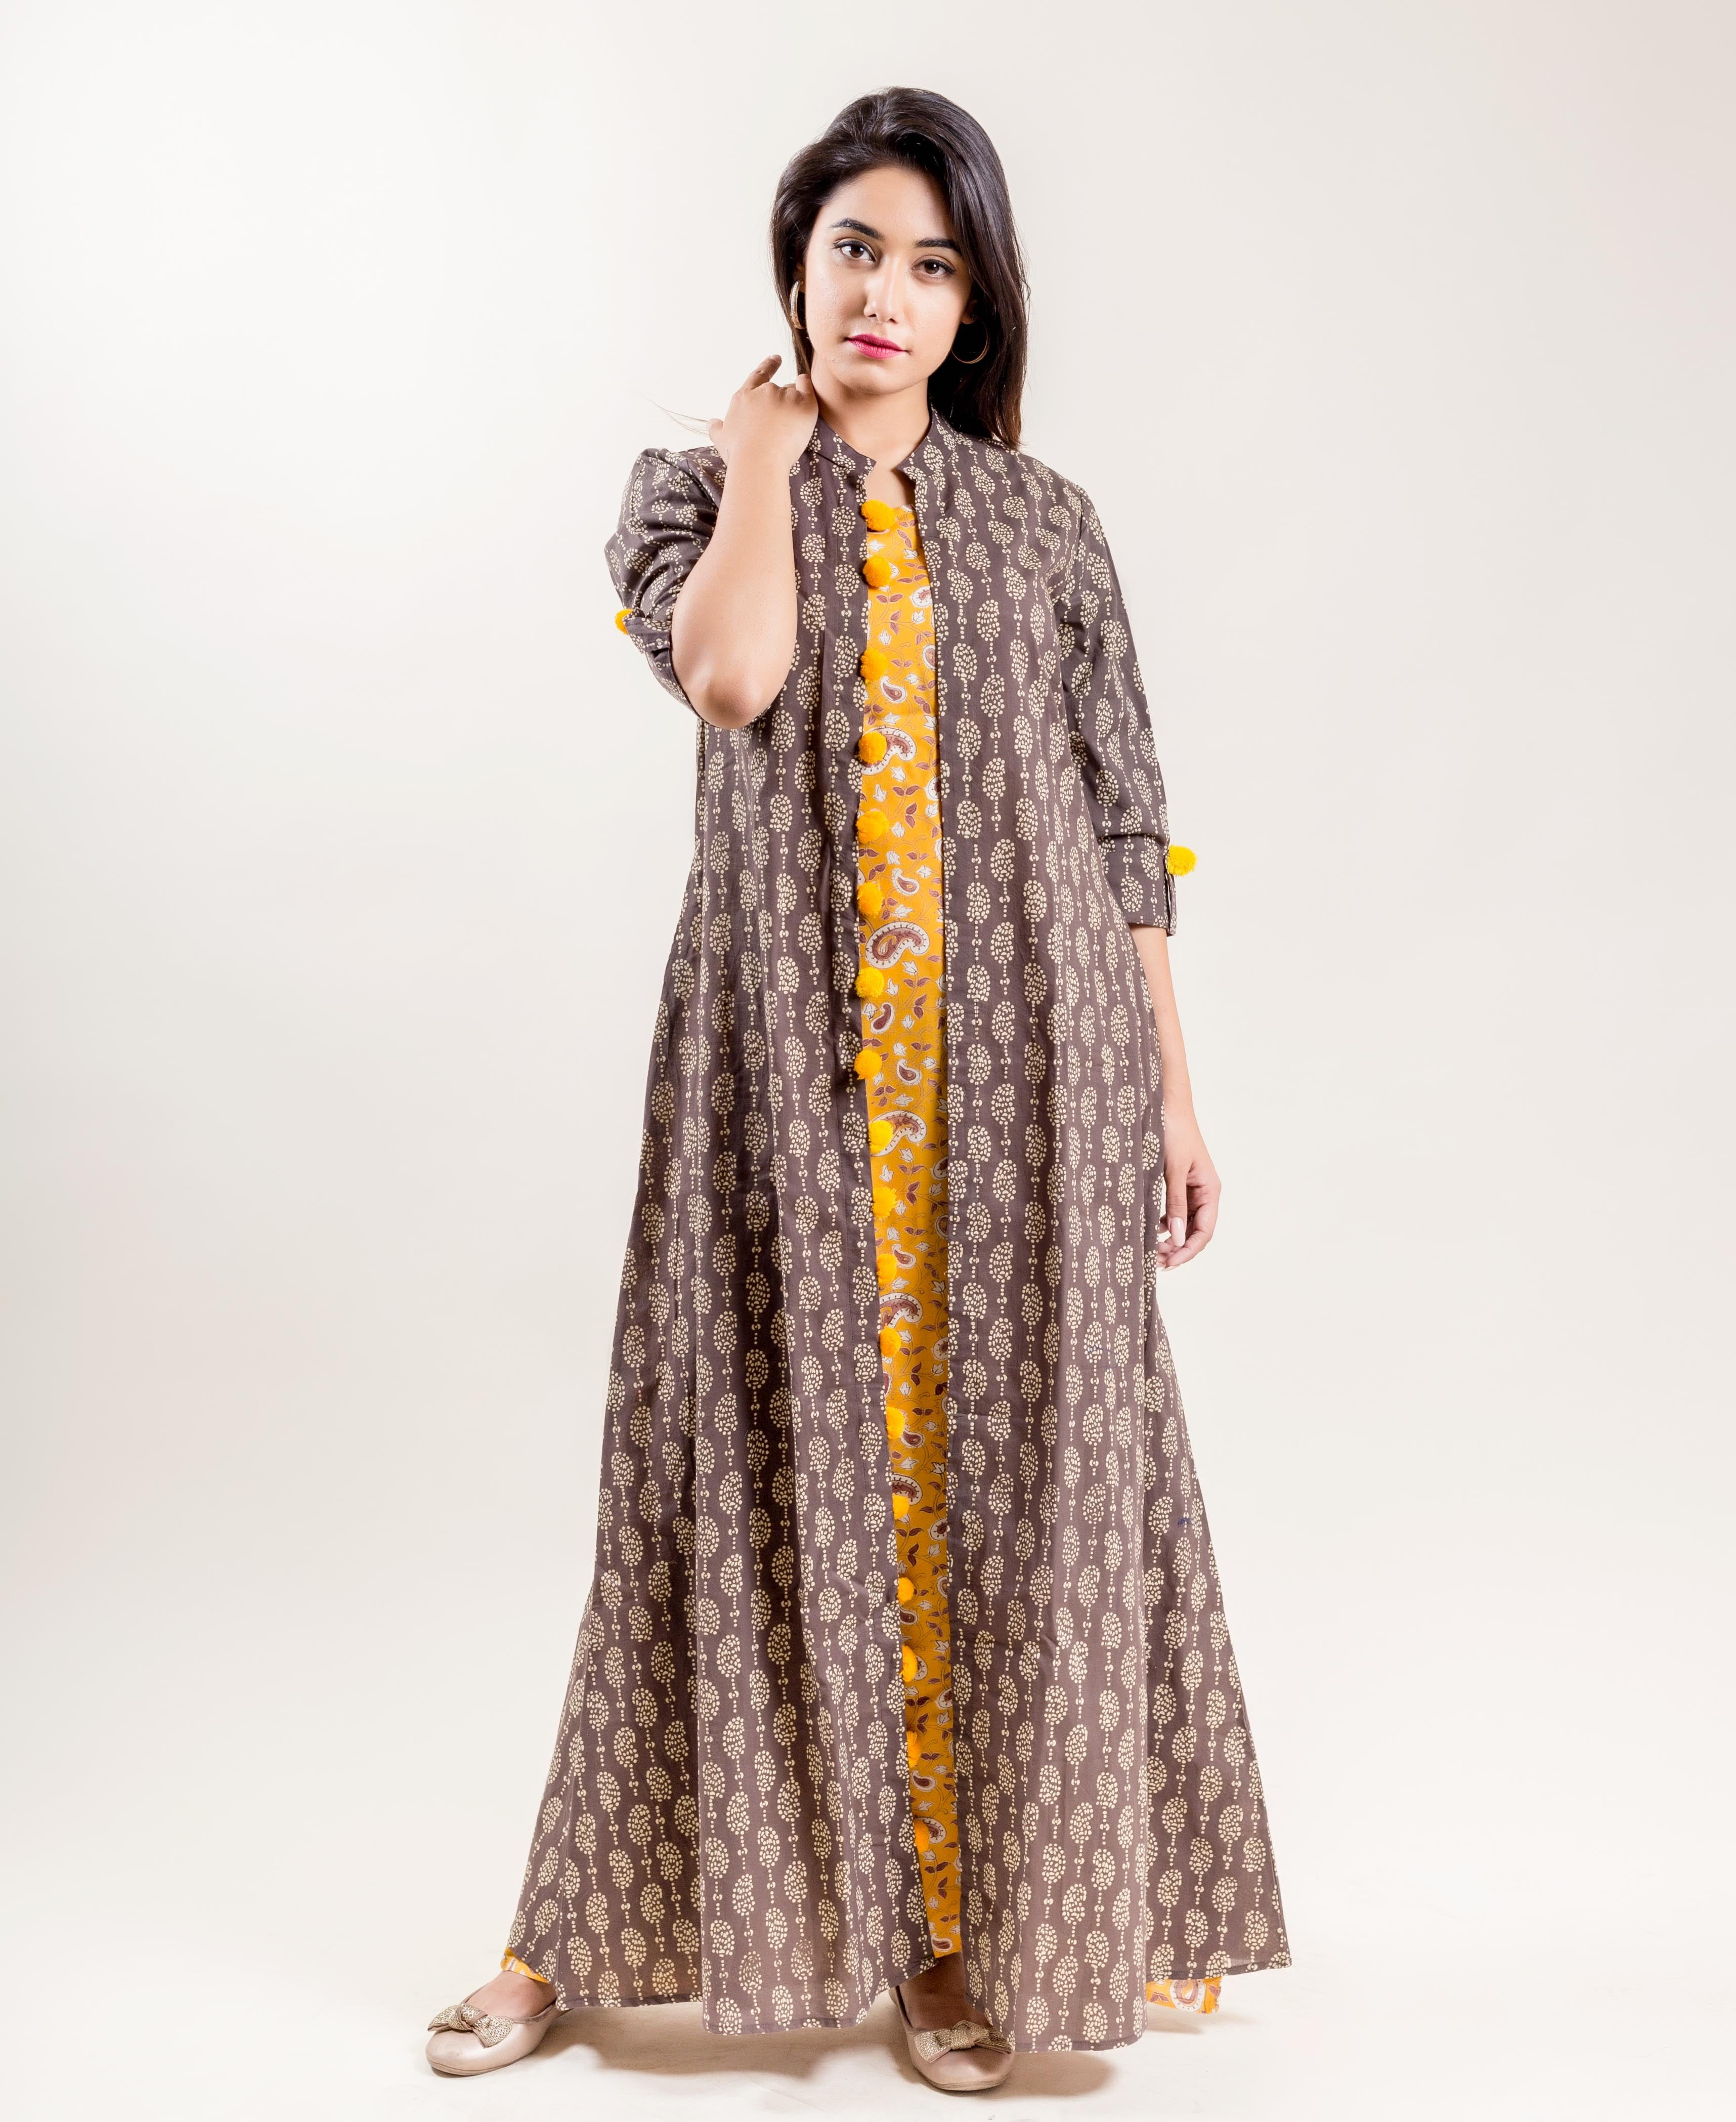 Brown and Mustard Hand Block Printed Double Layered Long Jacket Dress